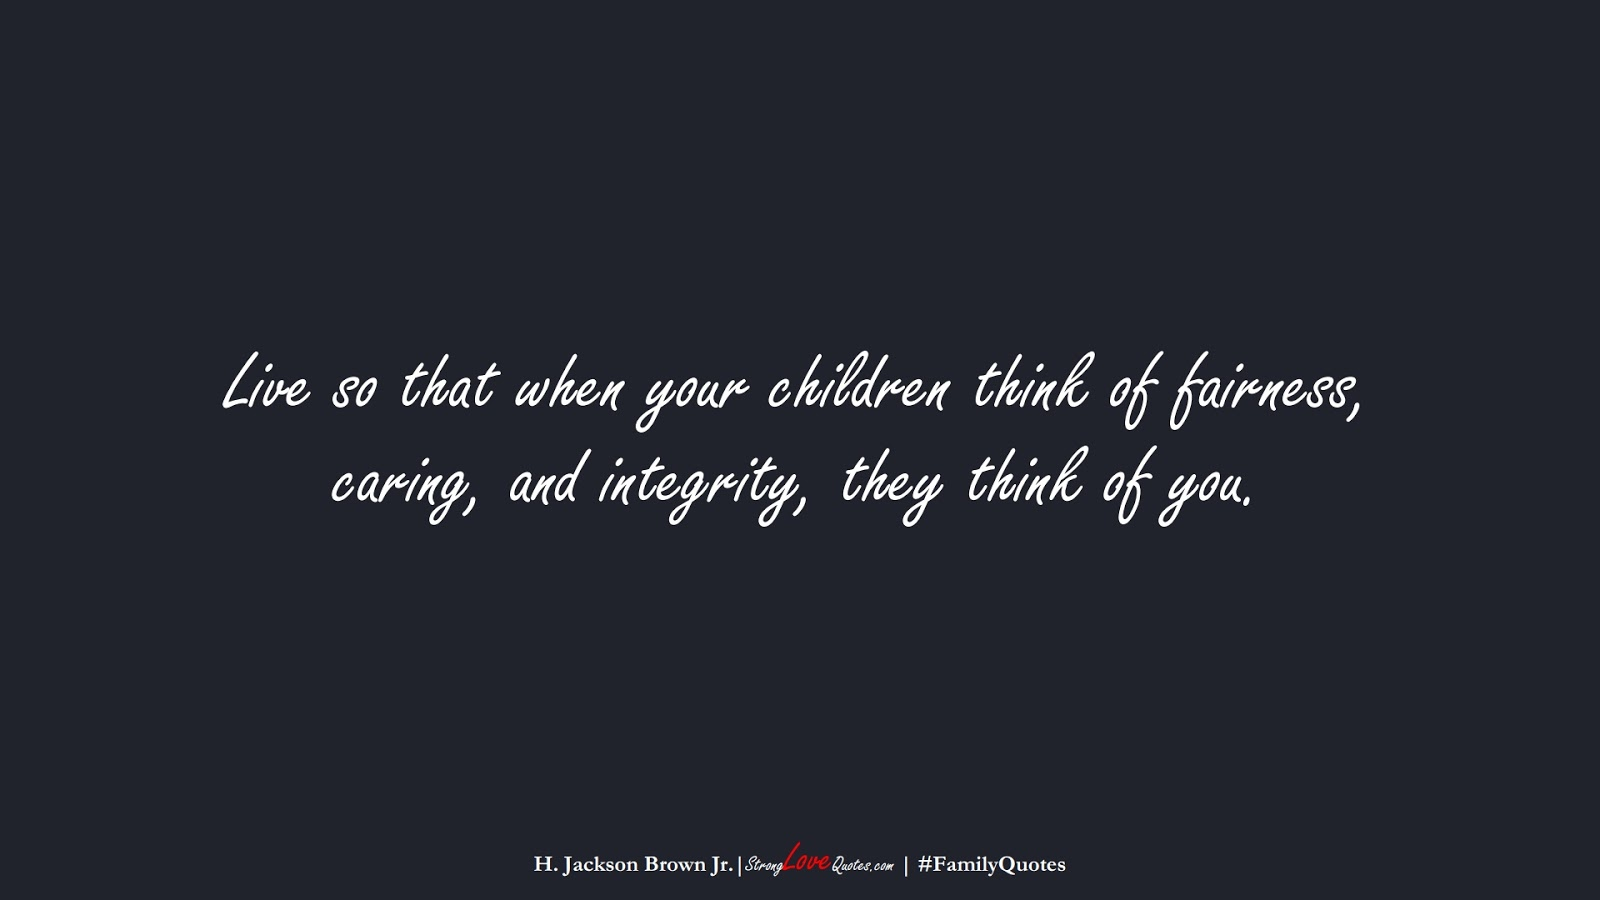 Live so that when your children think of fairness, caring, and integrity, they think of you. (H. Jackson Brown Jr.);  #FamilyQuotes